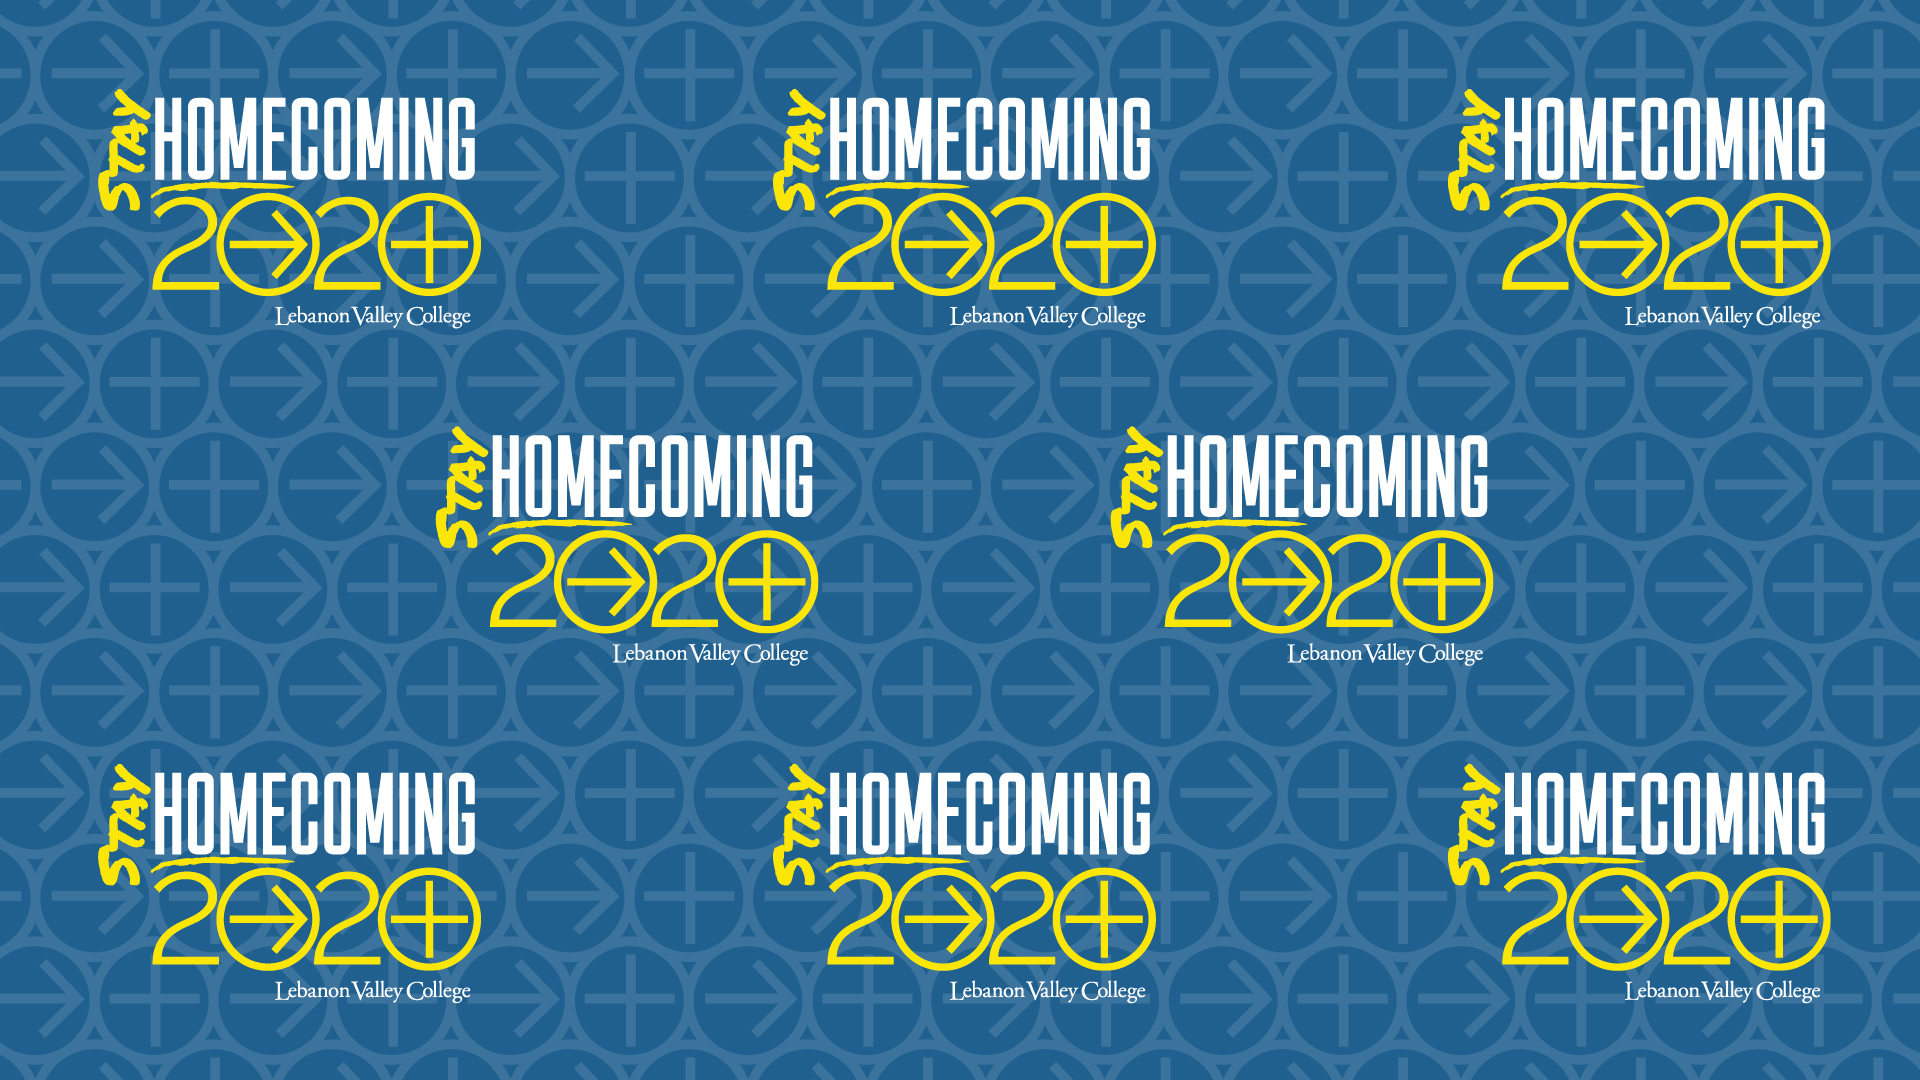 Stay-Homecoming 2020